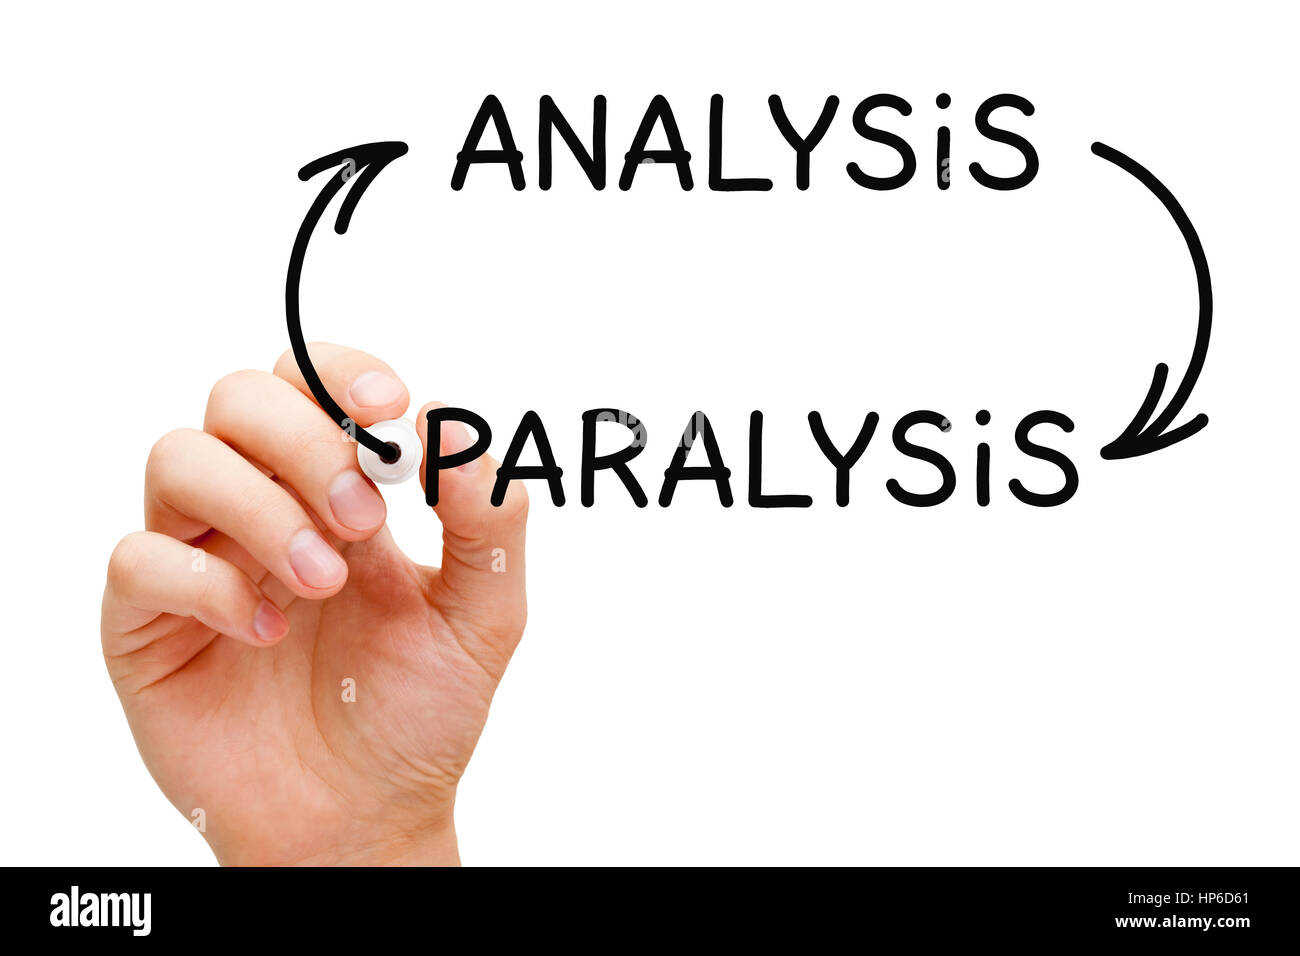 The Paralysis of Analysis: On Overthinking pictures